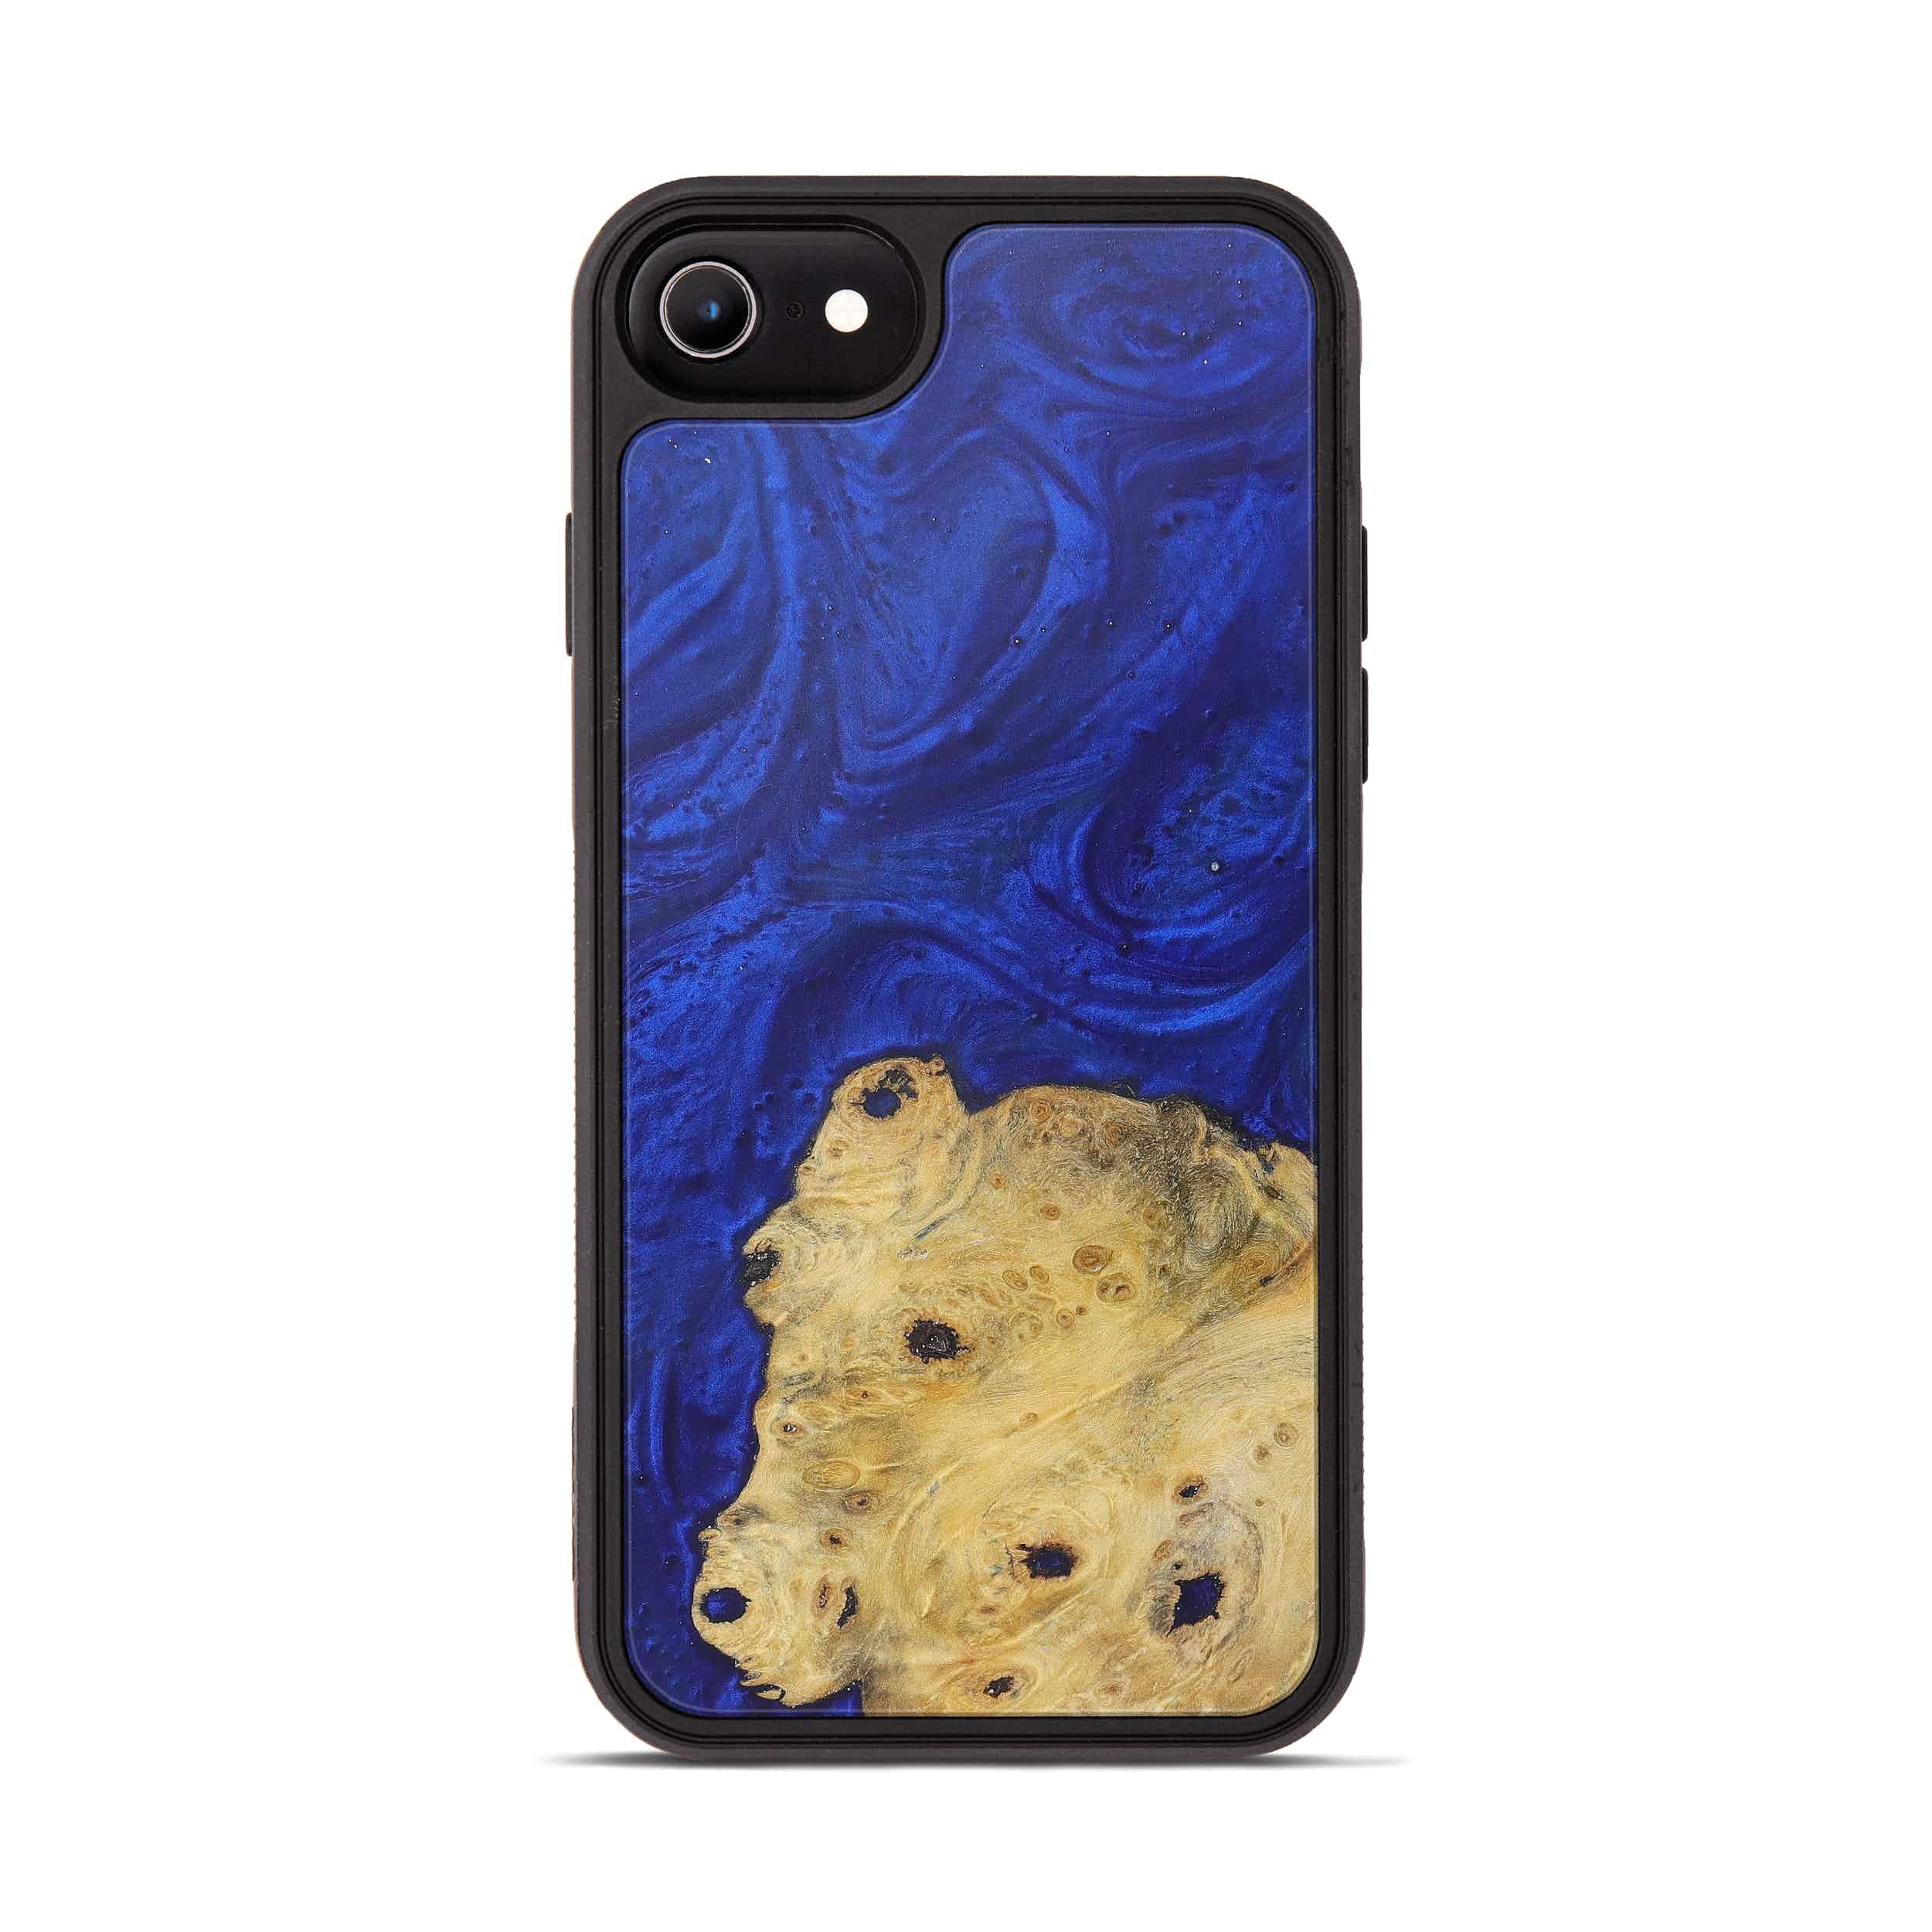 iPhone 6s Wood+Resin Phone Case - Dung (Dark Blue, 365971)